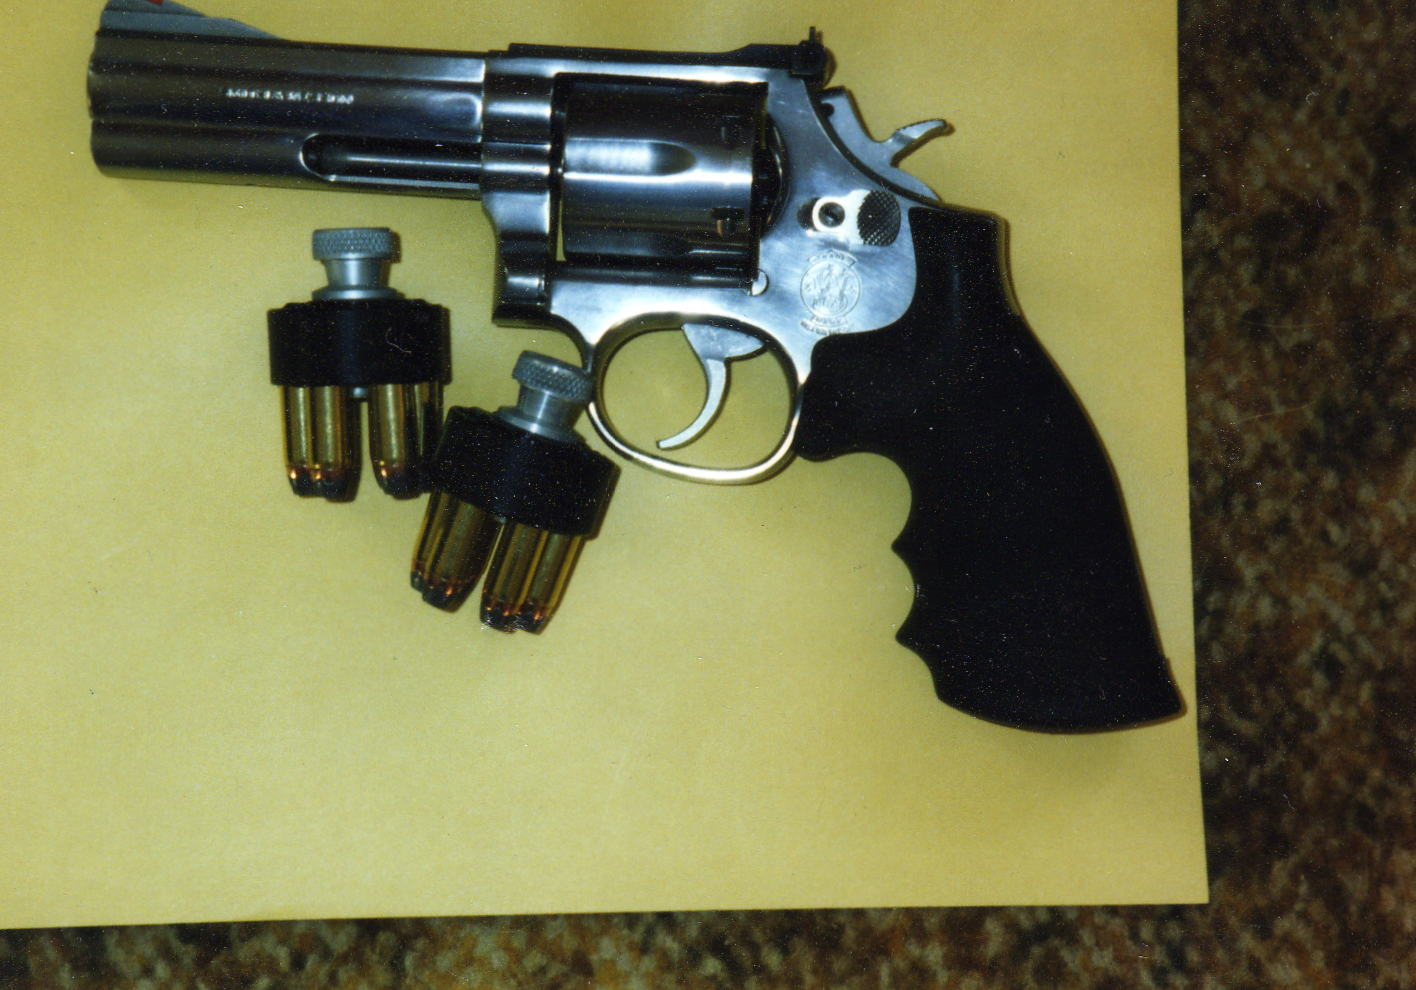 The .357 Magnum for Survival: You Can't Do Better